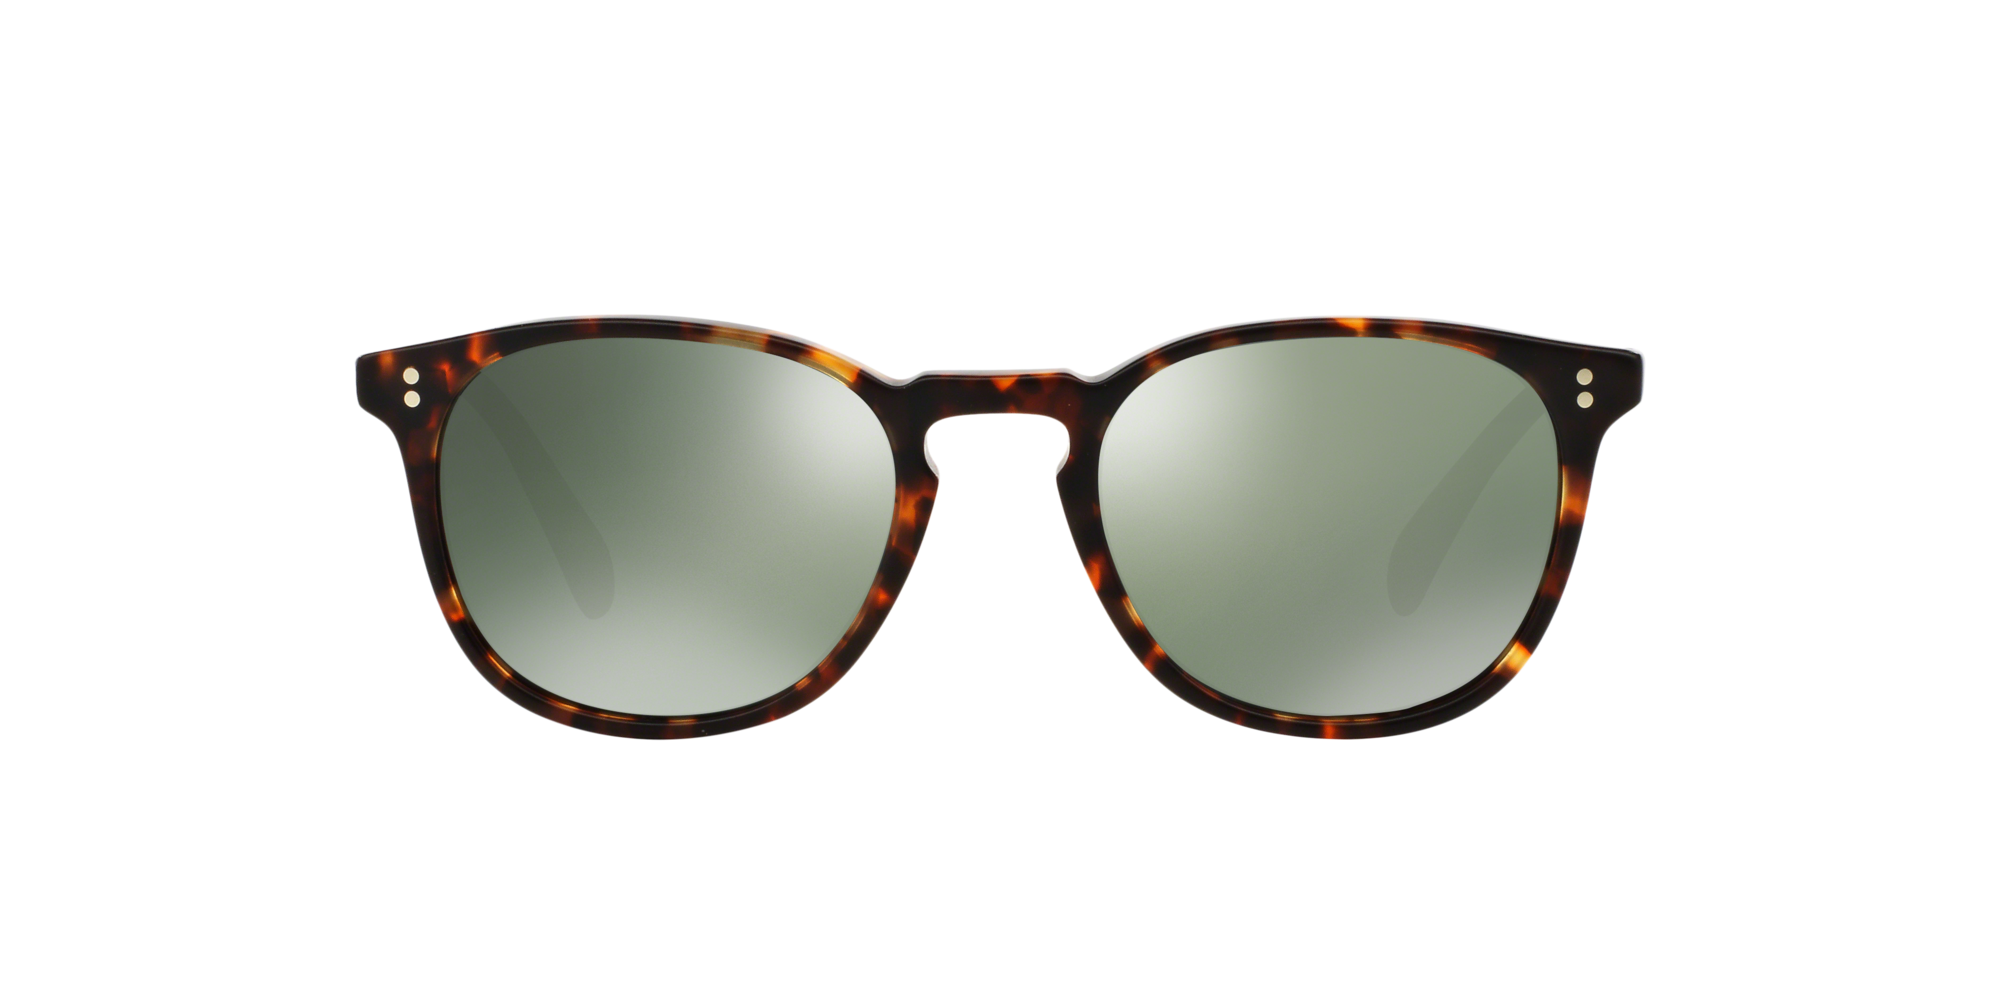 Fuse Lenses Polarized Replacement Lenses for Oliver Peoples Finley ESQ OV 5298